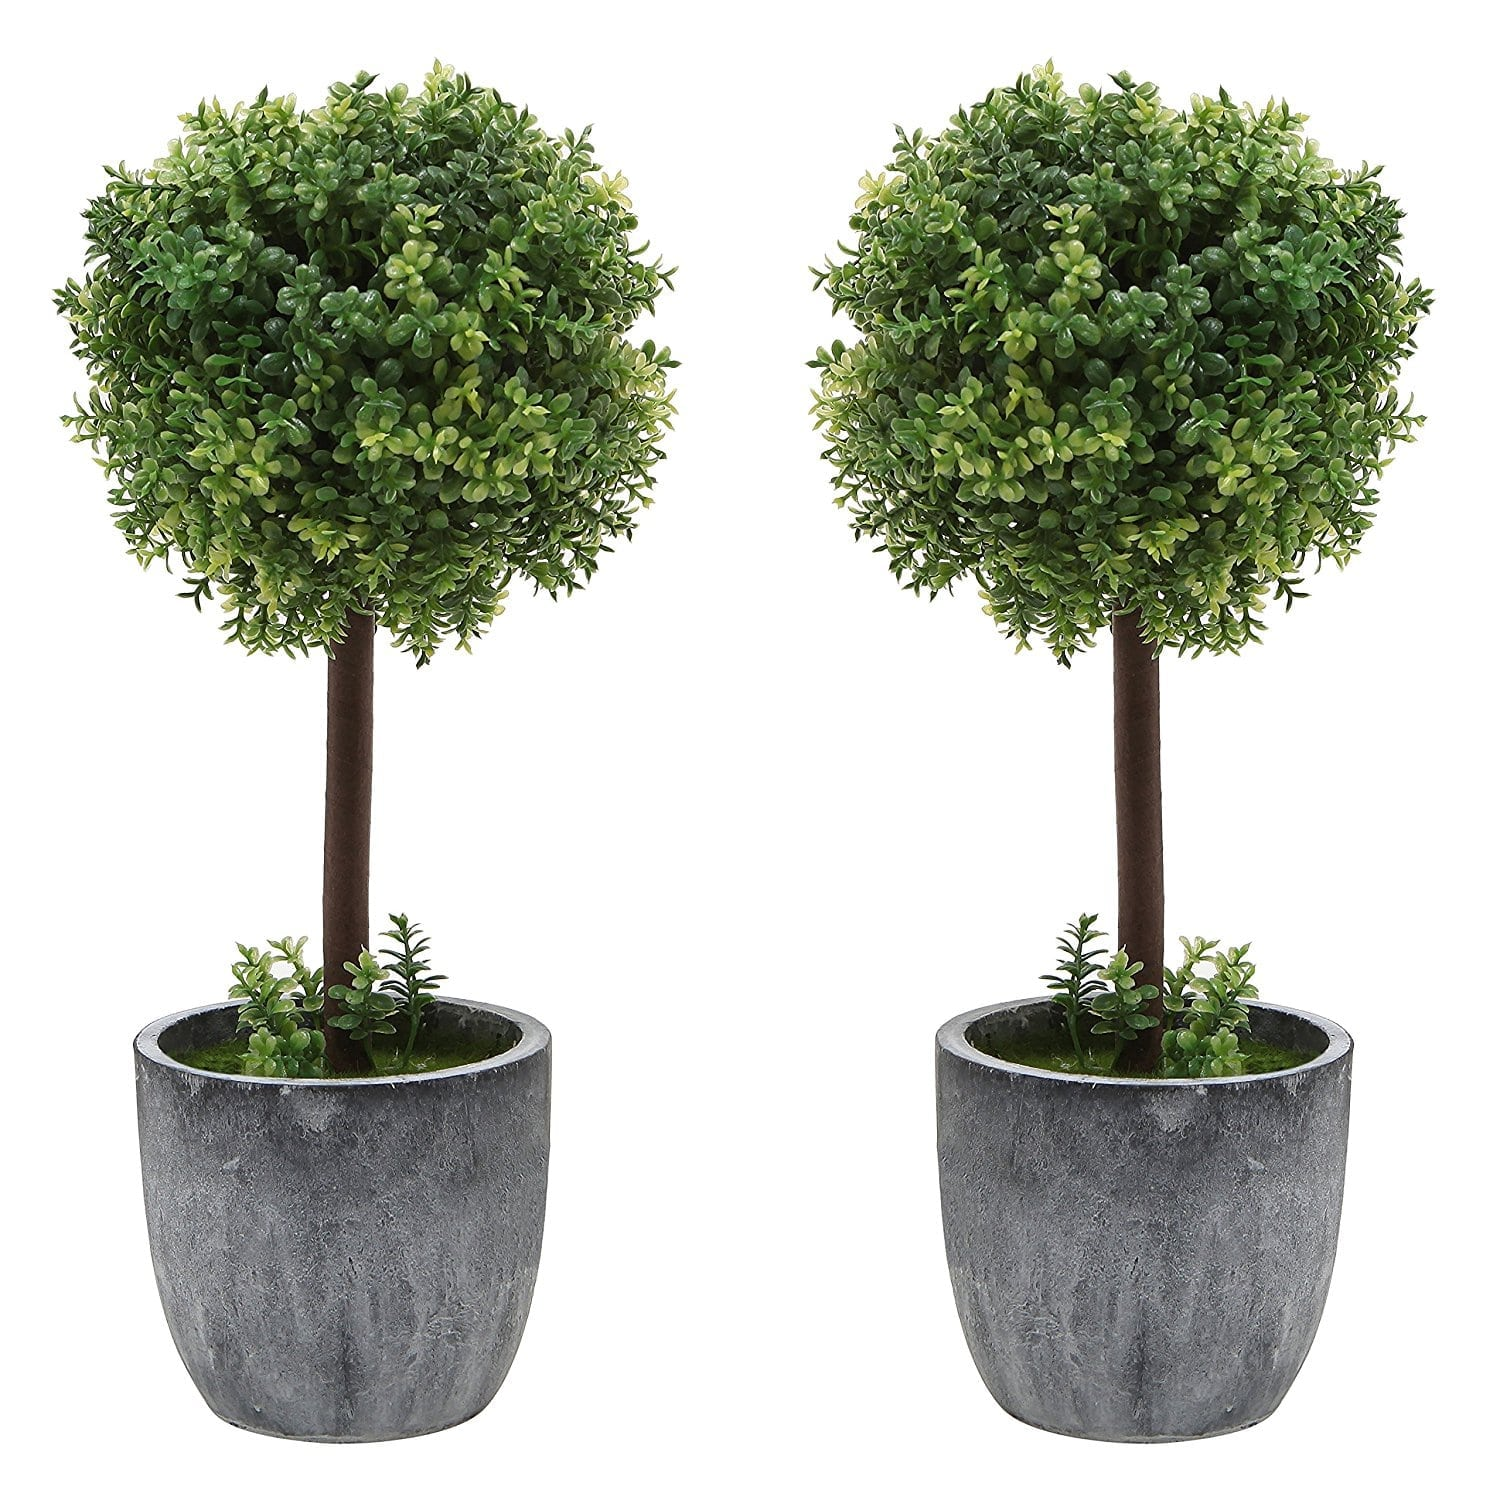 Decorating With Faux Plants | Faux Boxwood Topiary